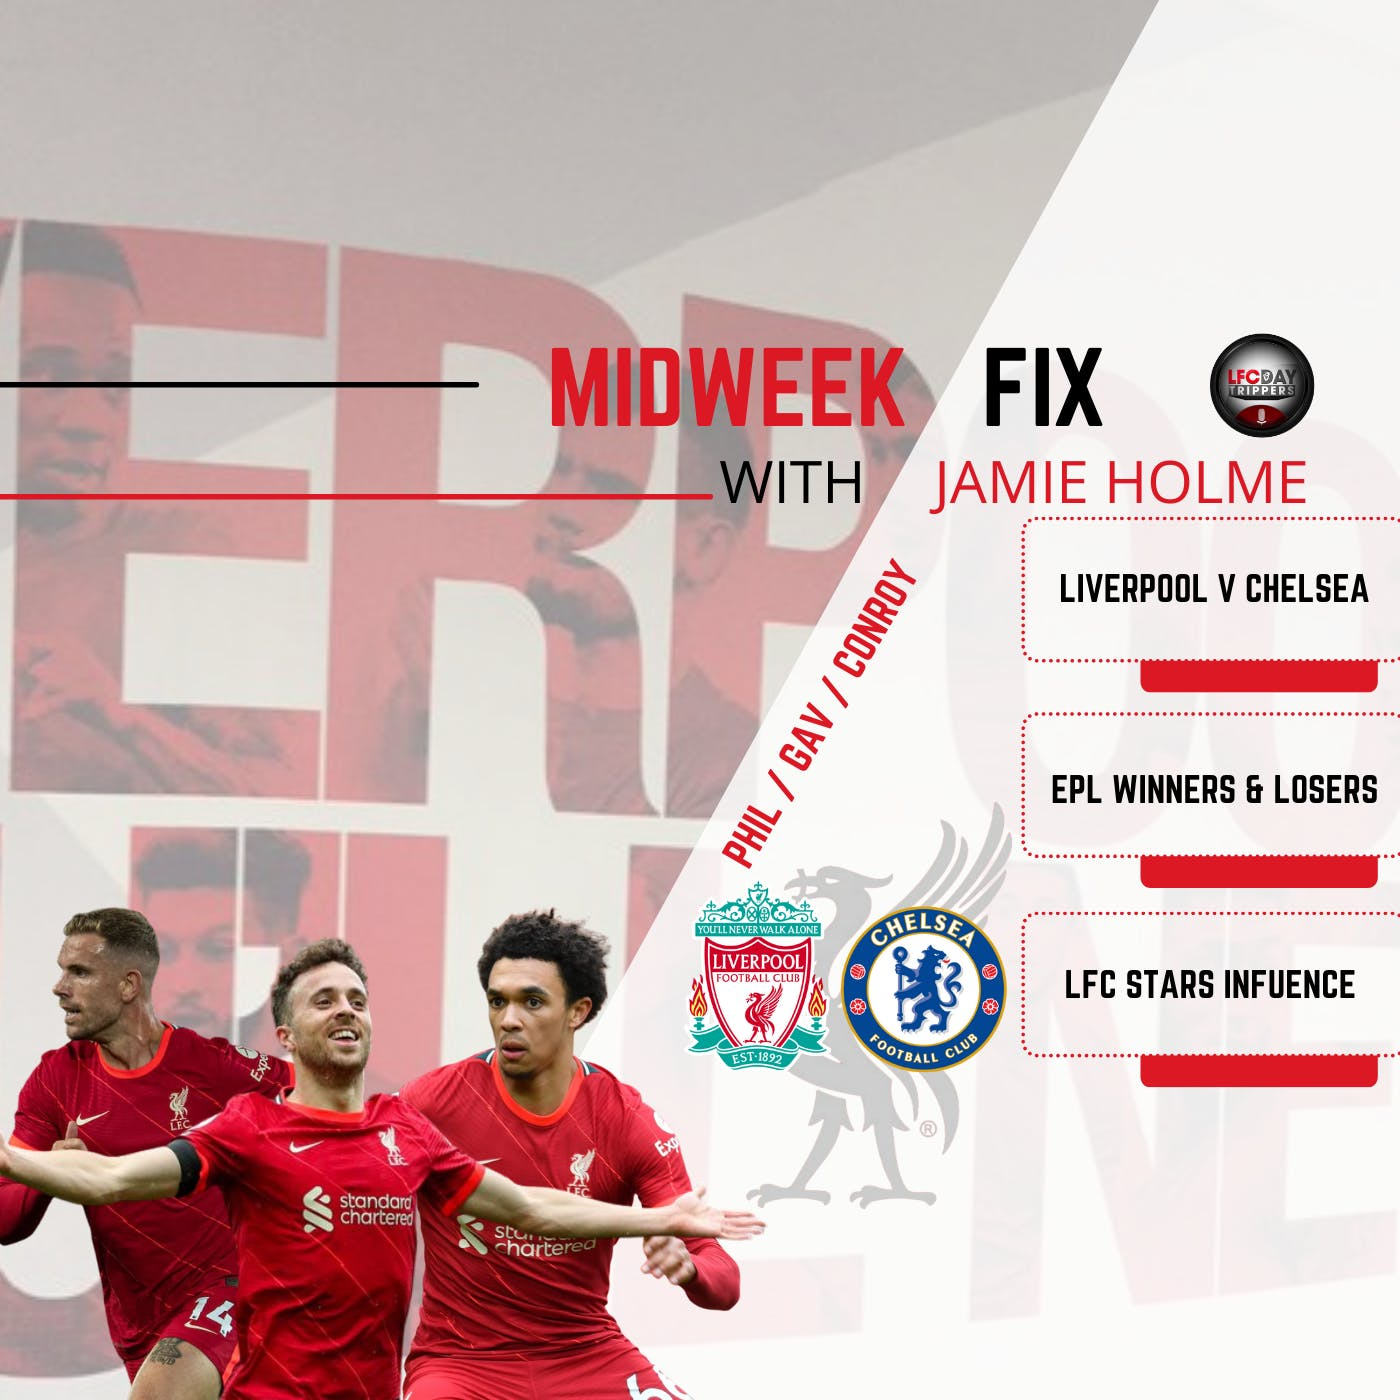 Liverpool Tie Up Henderson | The Midweek Fix